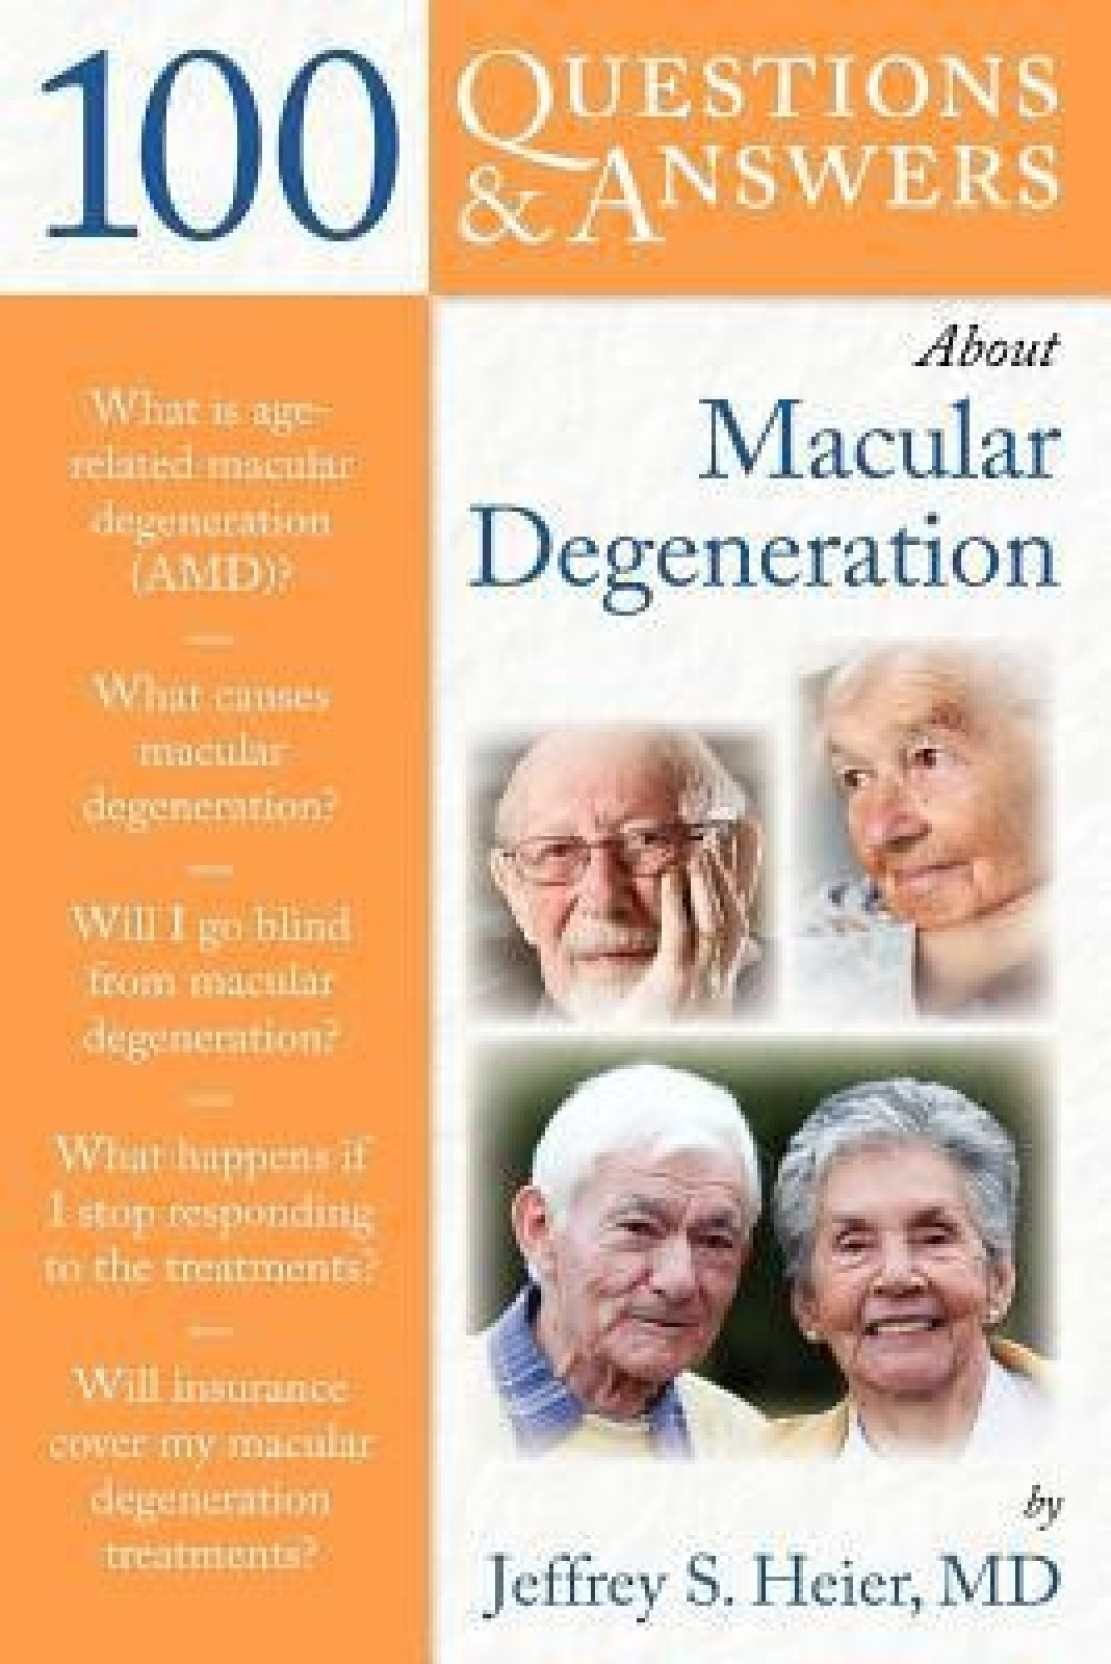 100 Questions & Answers About Macular Degeneration. ADD TO CART